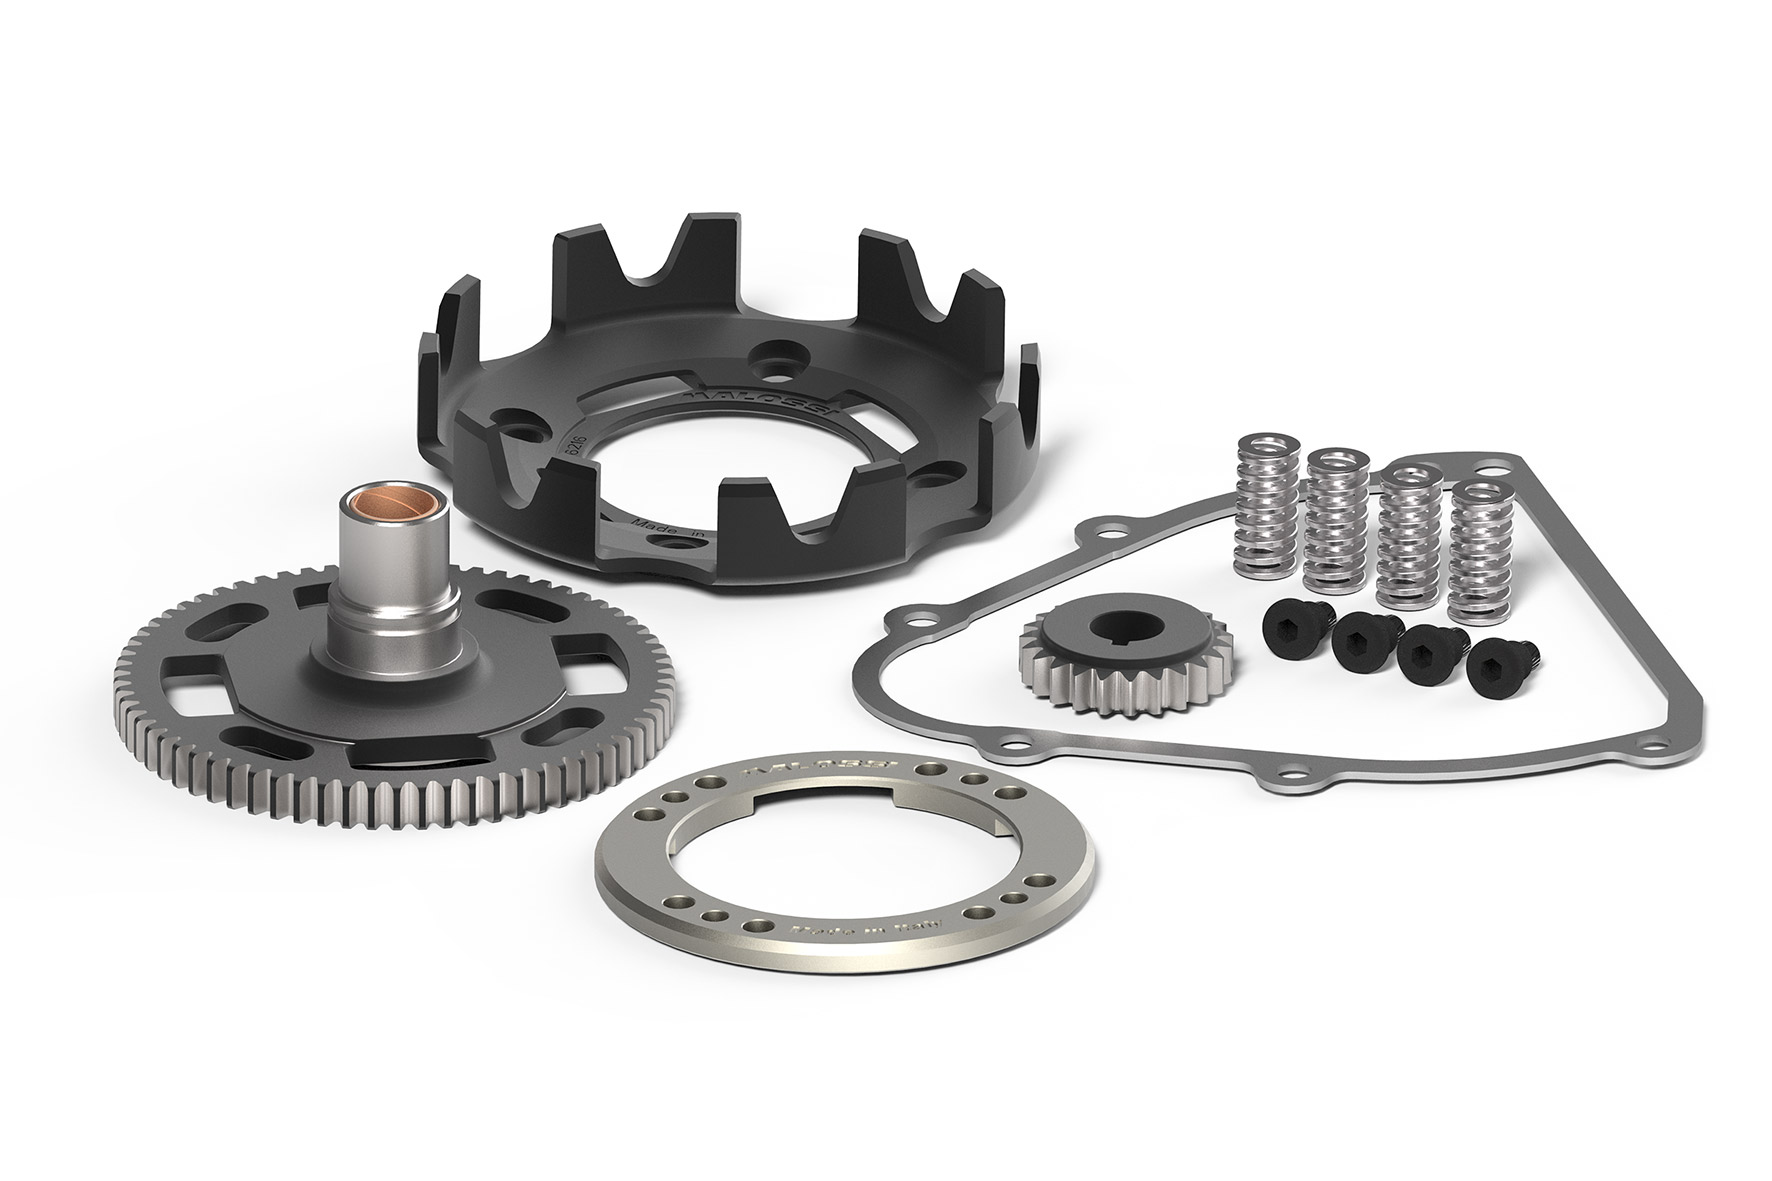 PRIMARY GEARS z 27/69 with FLEXIBLE COUPLING